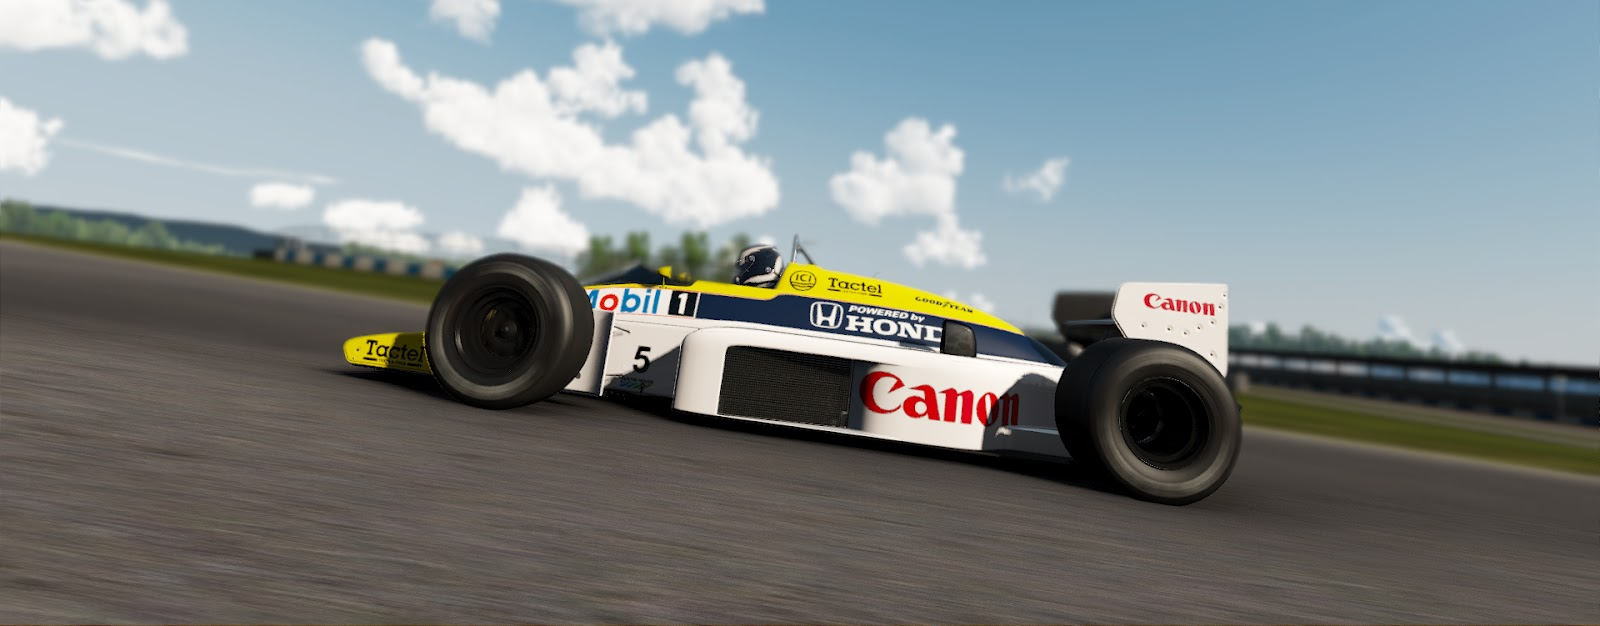 Screenpassion Williams Fw11 Honda